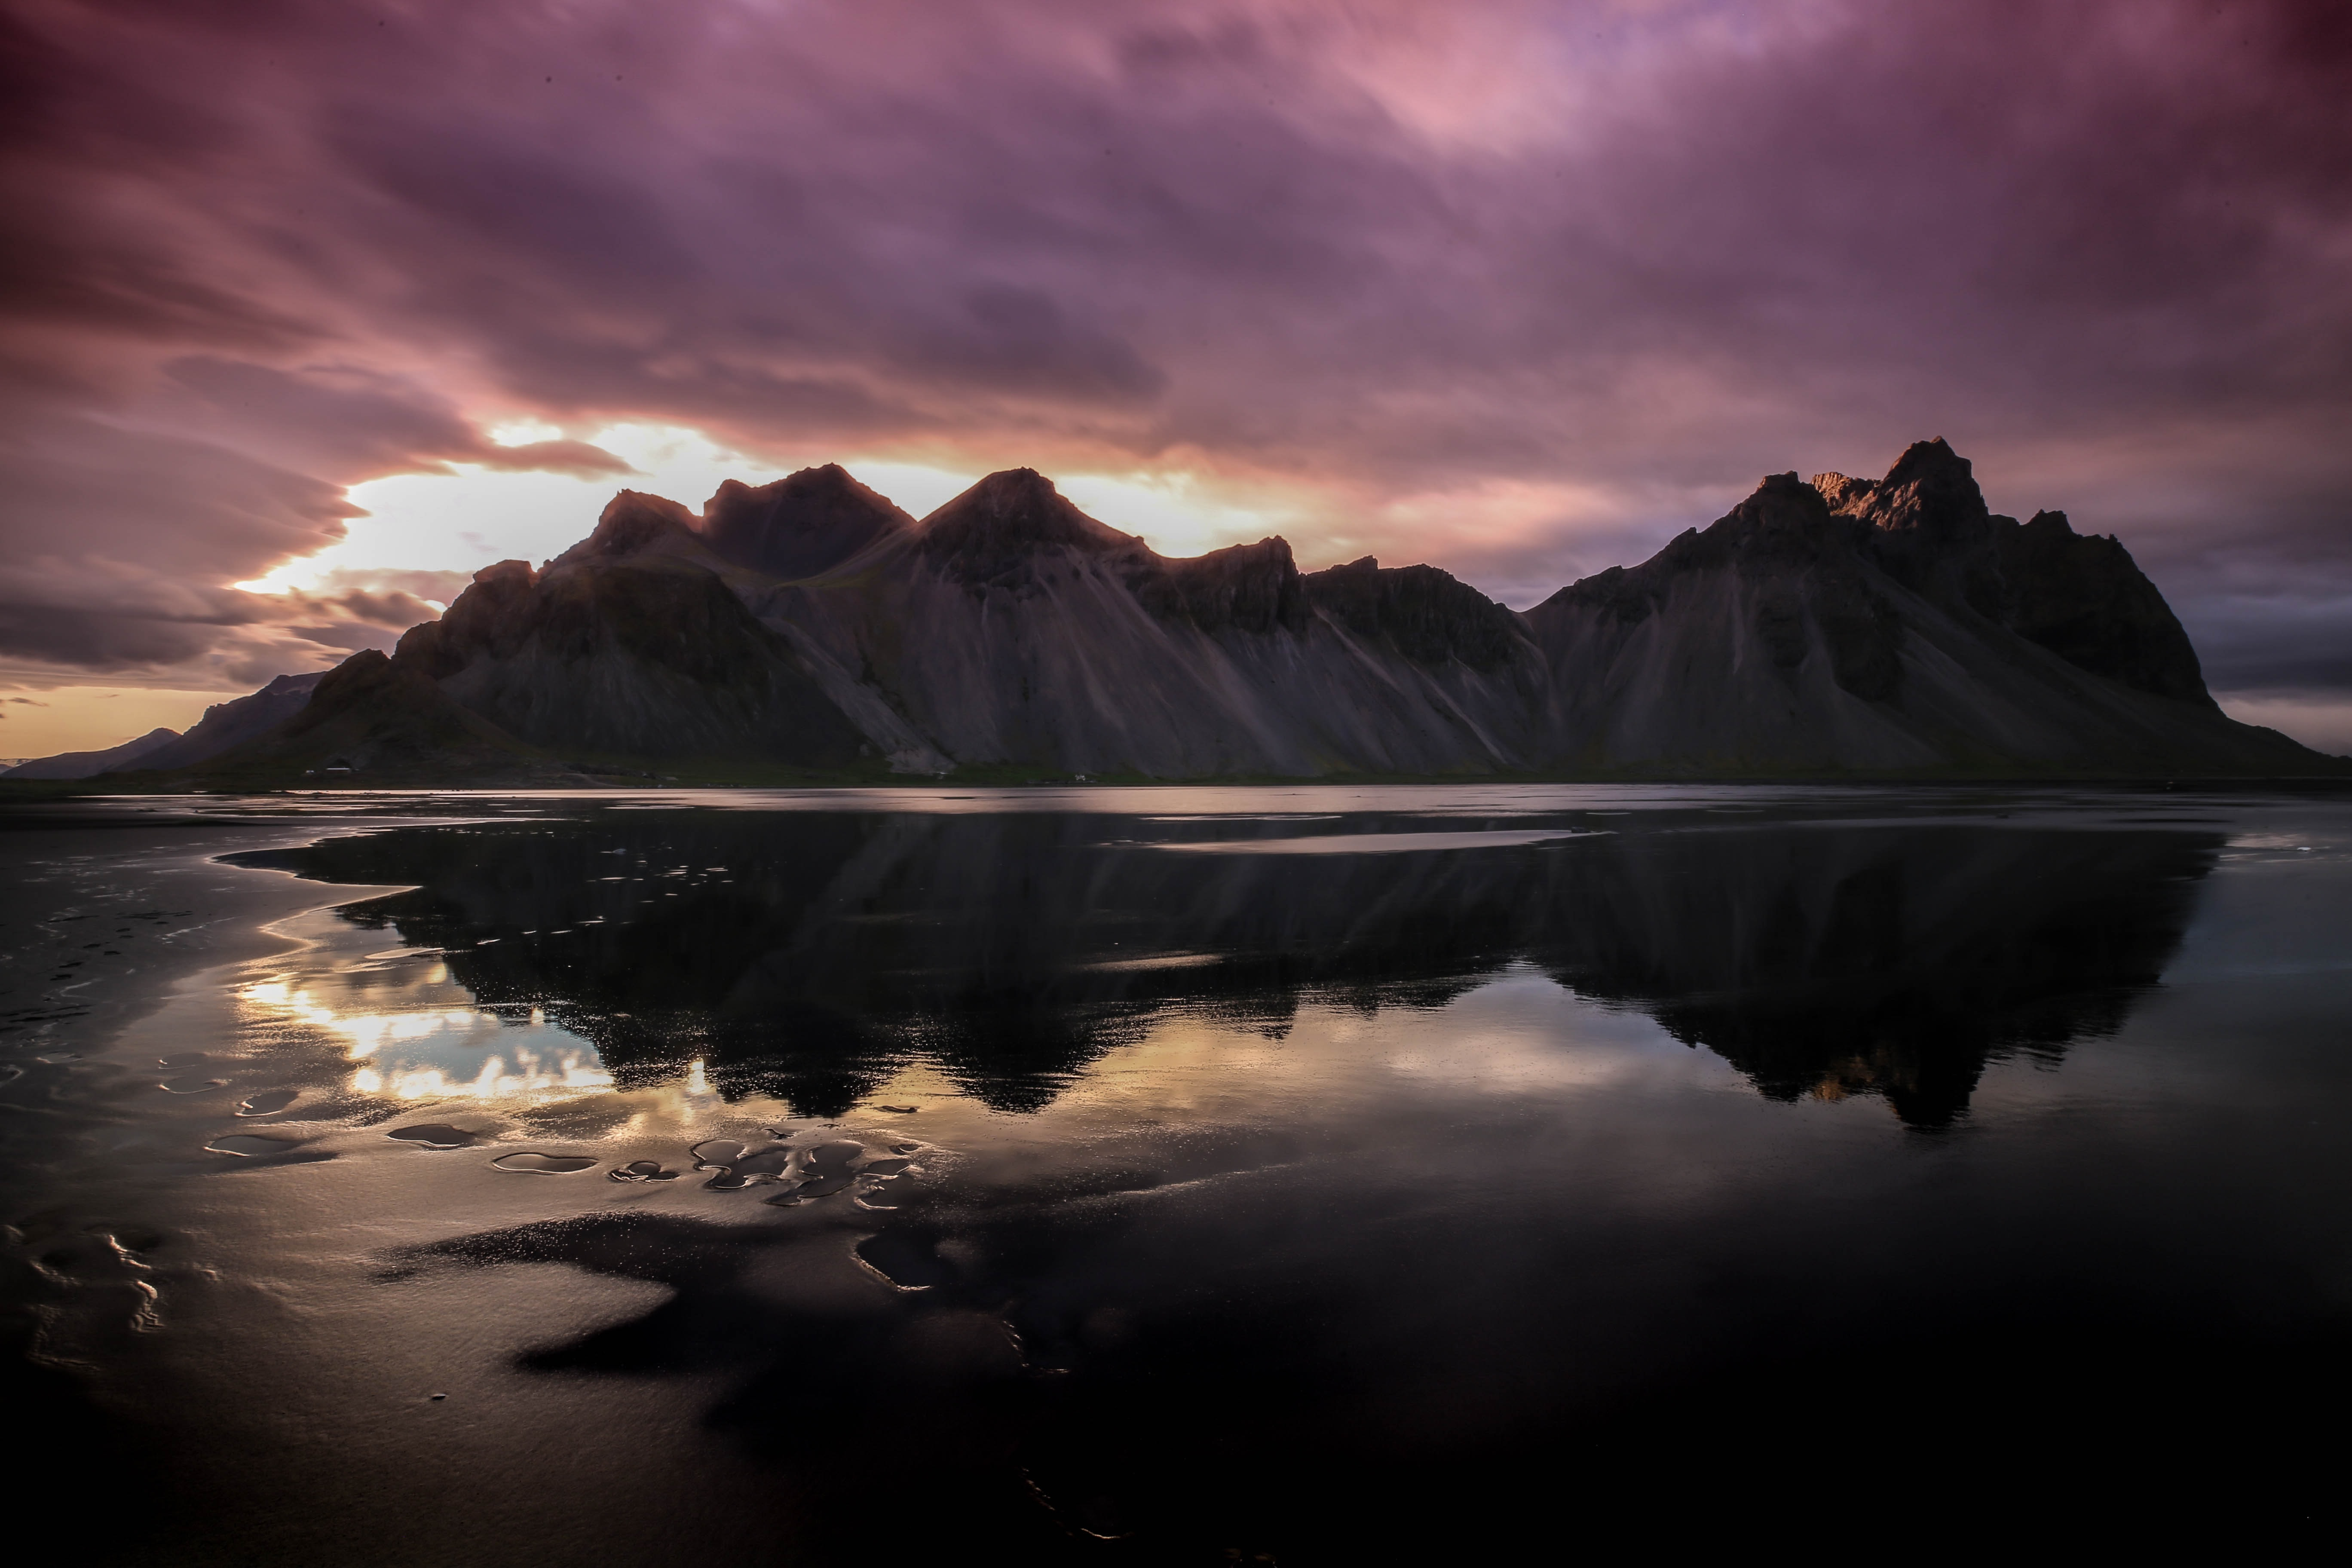 Smooth eroded mountains reflected in a half-frozen lake in Höfn